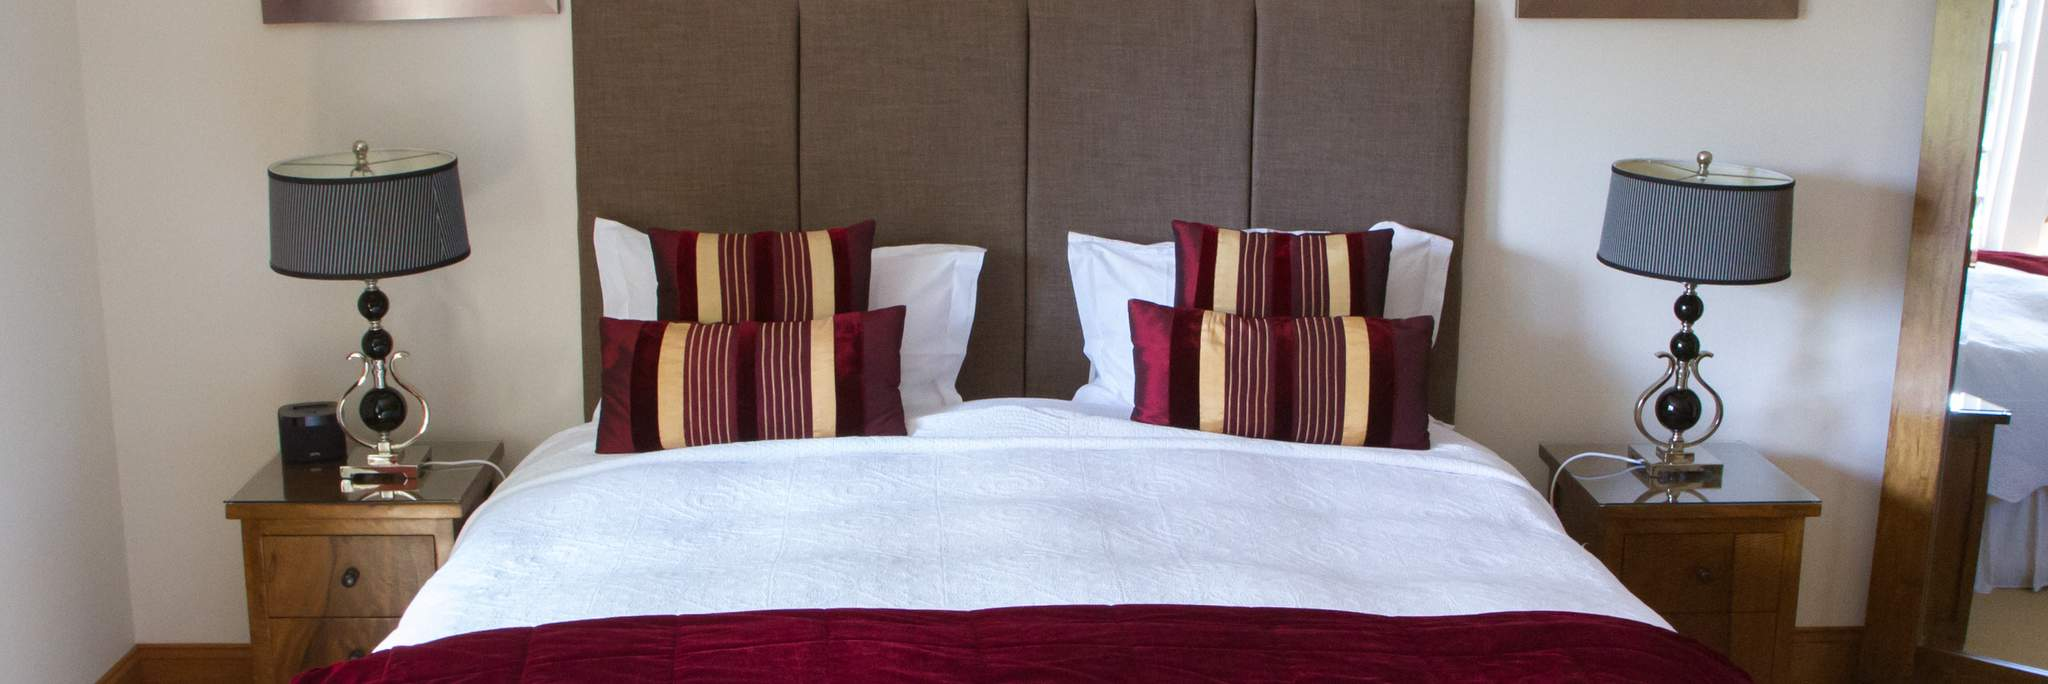 Bed and Breakfasts in Aberdeen, Grampian and Moray